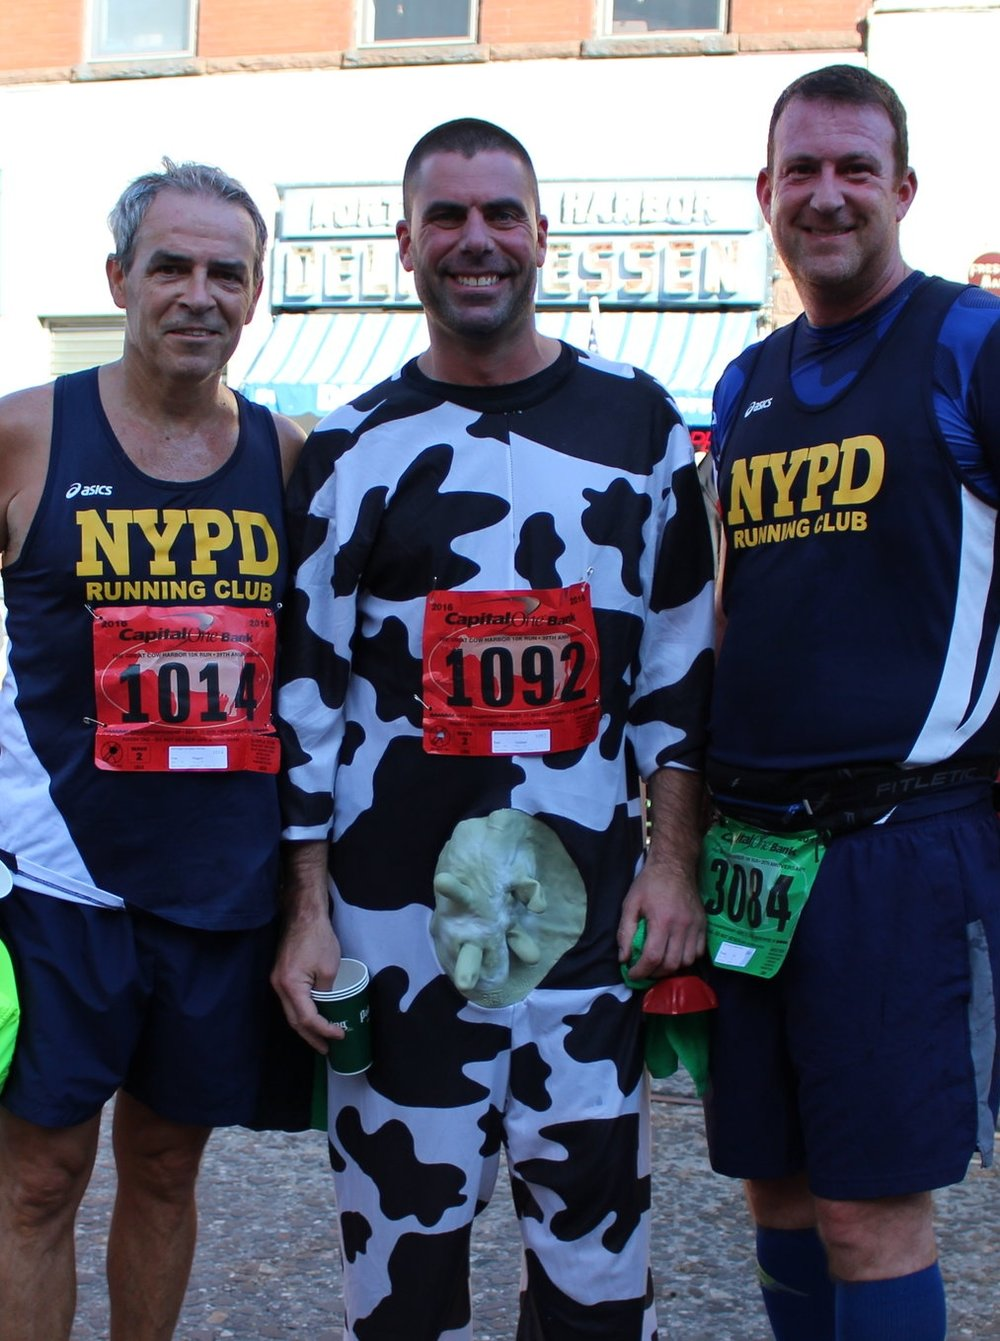 Long Islander News photo/Janee Law Tom Biggers, left, and Tommy Coll, right, both of Massapequa, have participated in the Great Cow Harbor Race four times, while Paul Giuliani, middle, of East Northport, has participated 16 times.